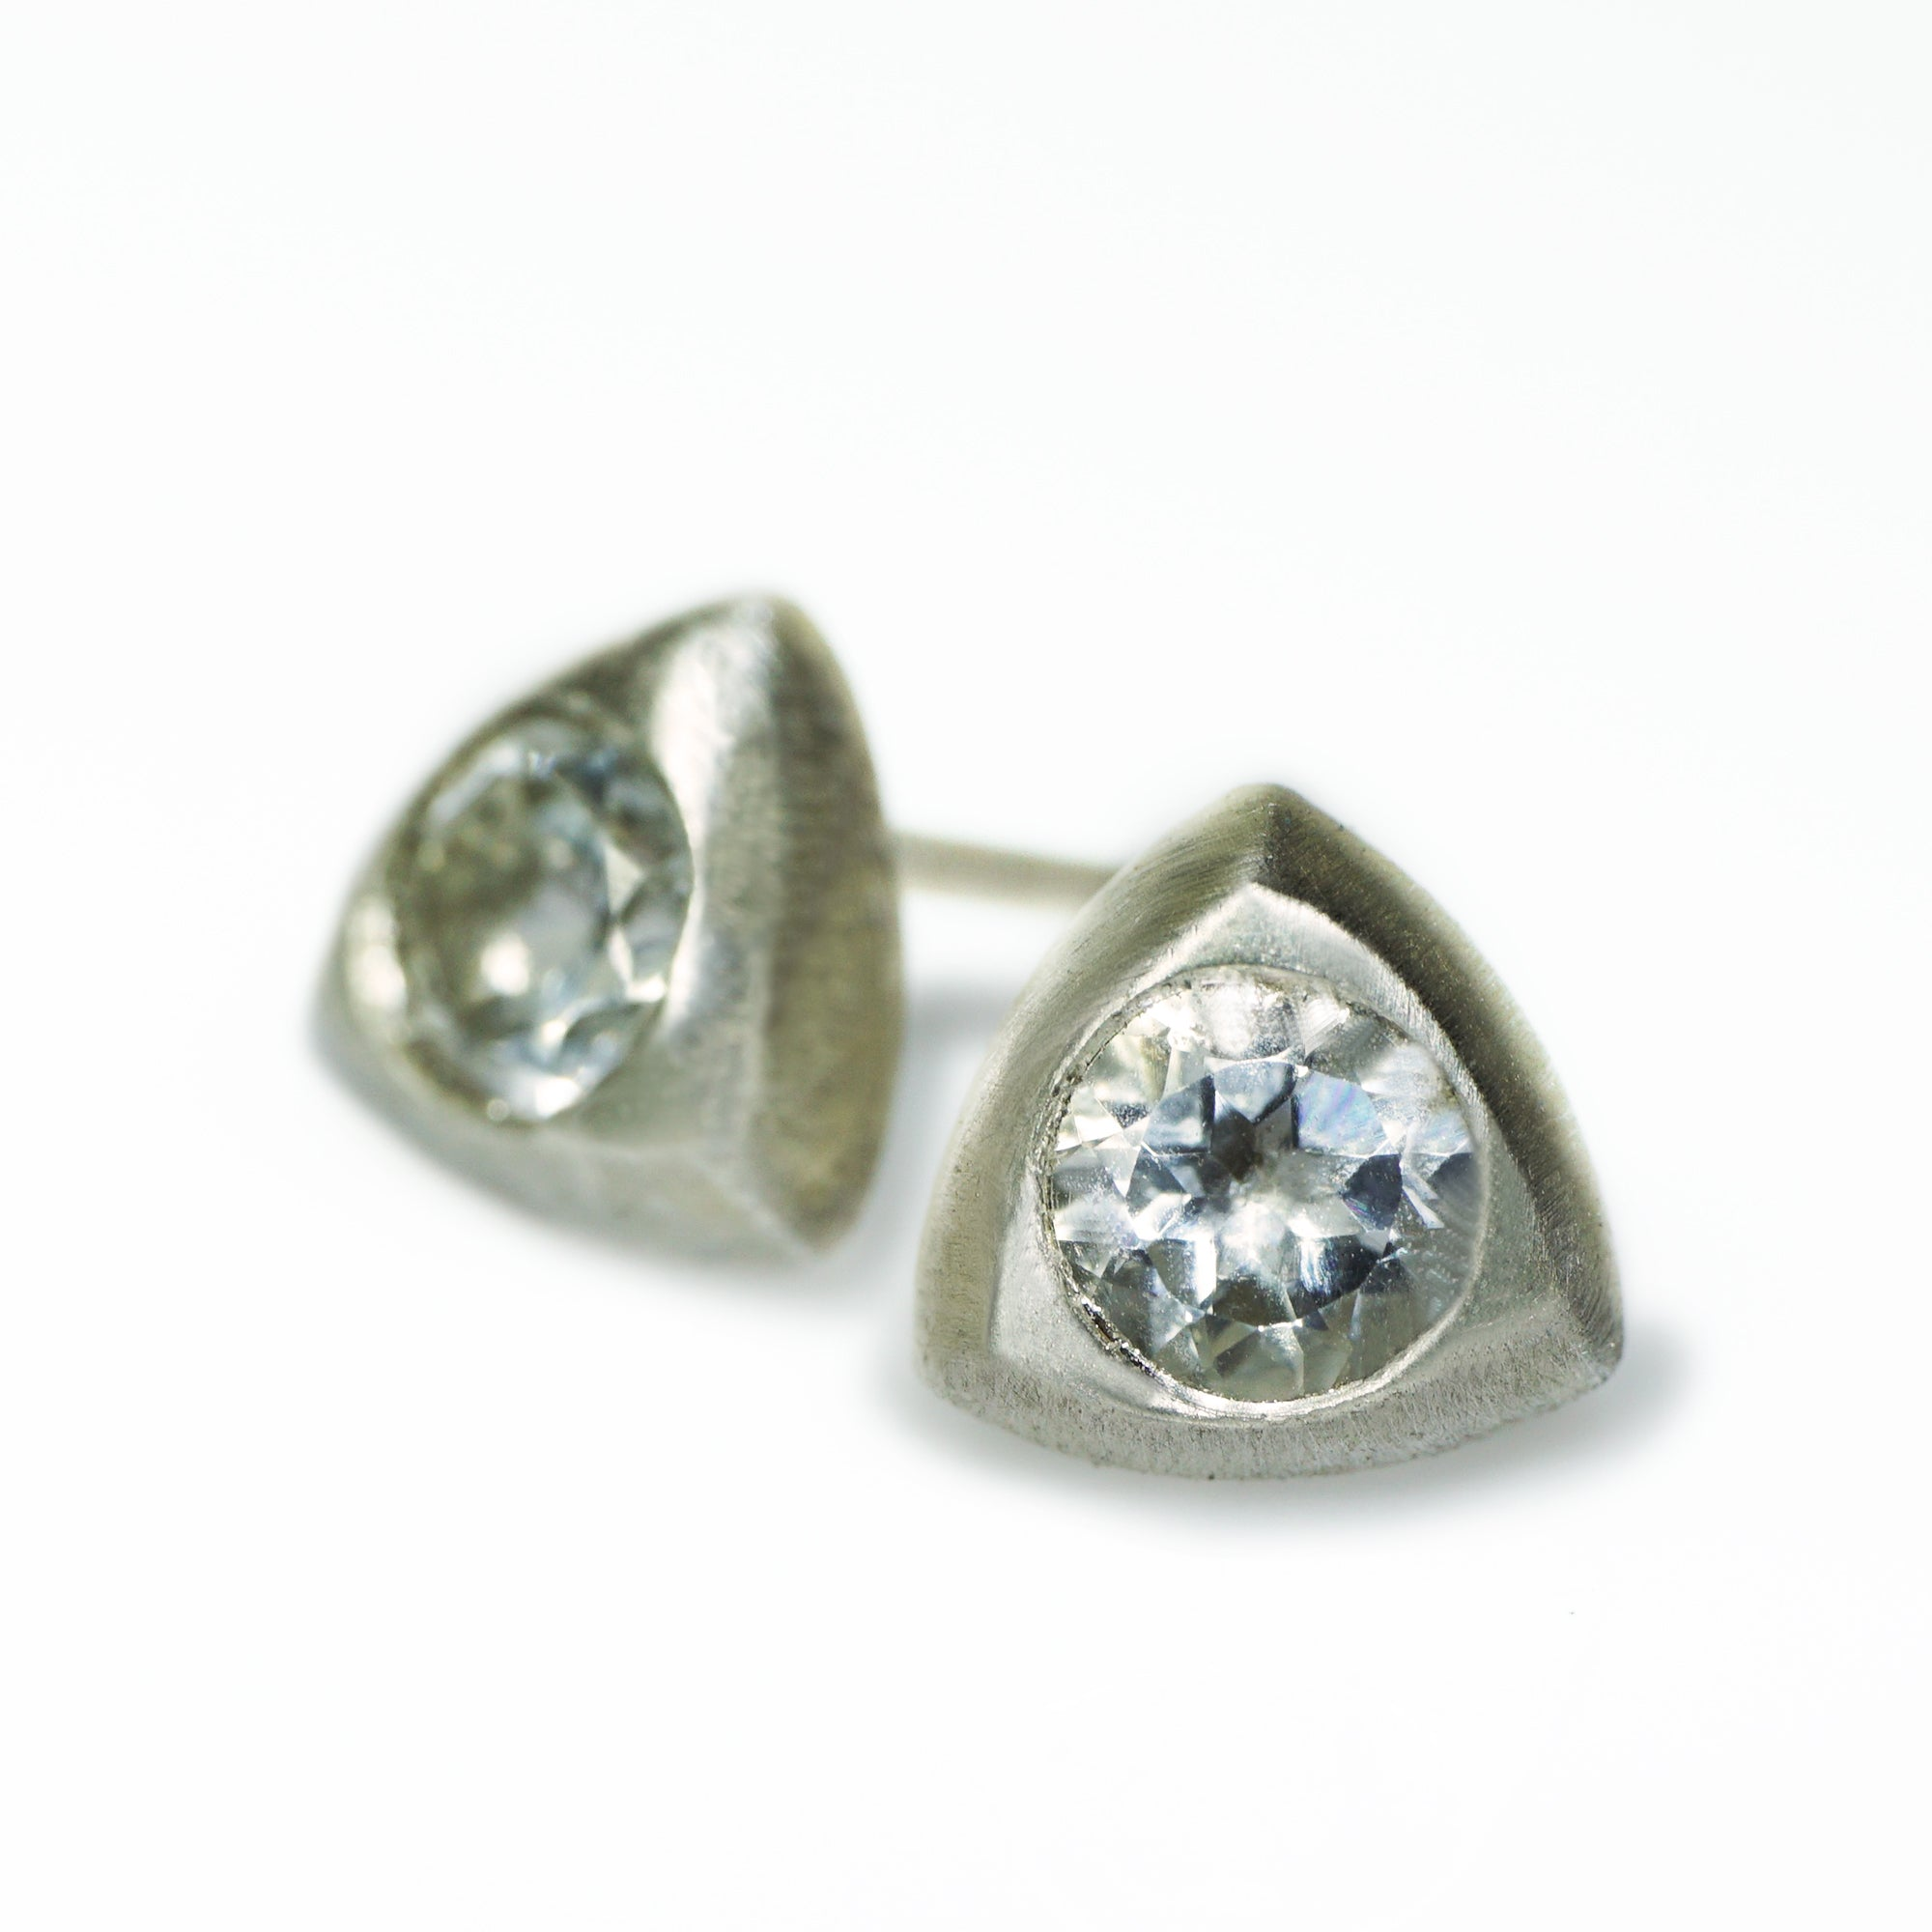 cut joy jewels russian of solitaire excellent lab london diamond princess earrings products stud